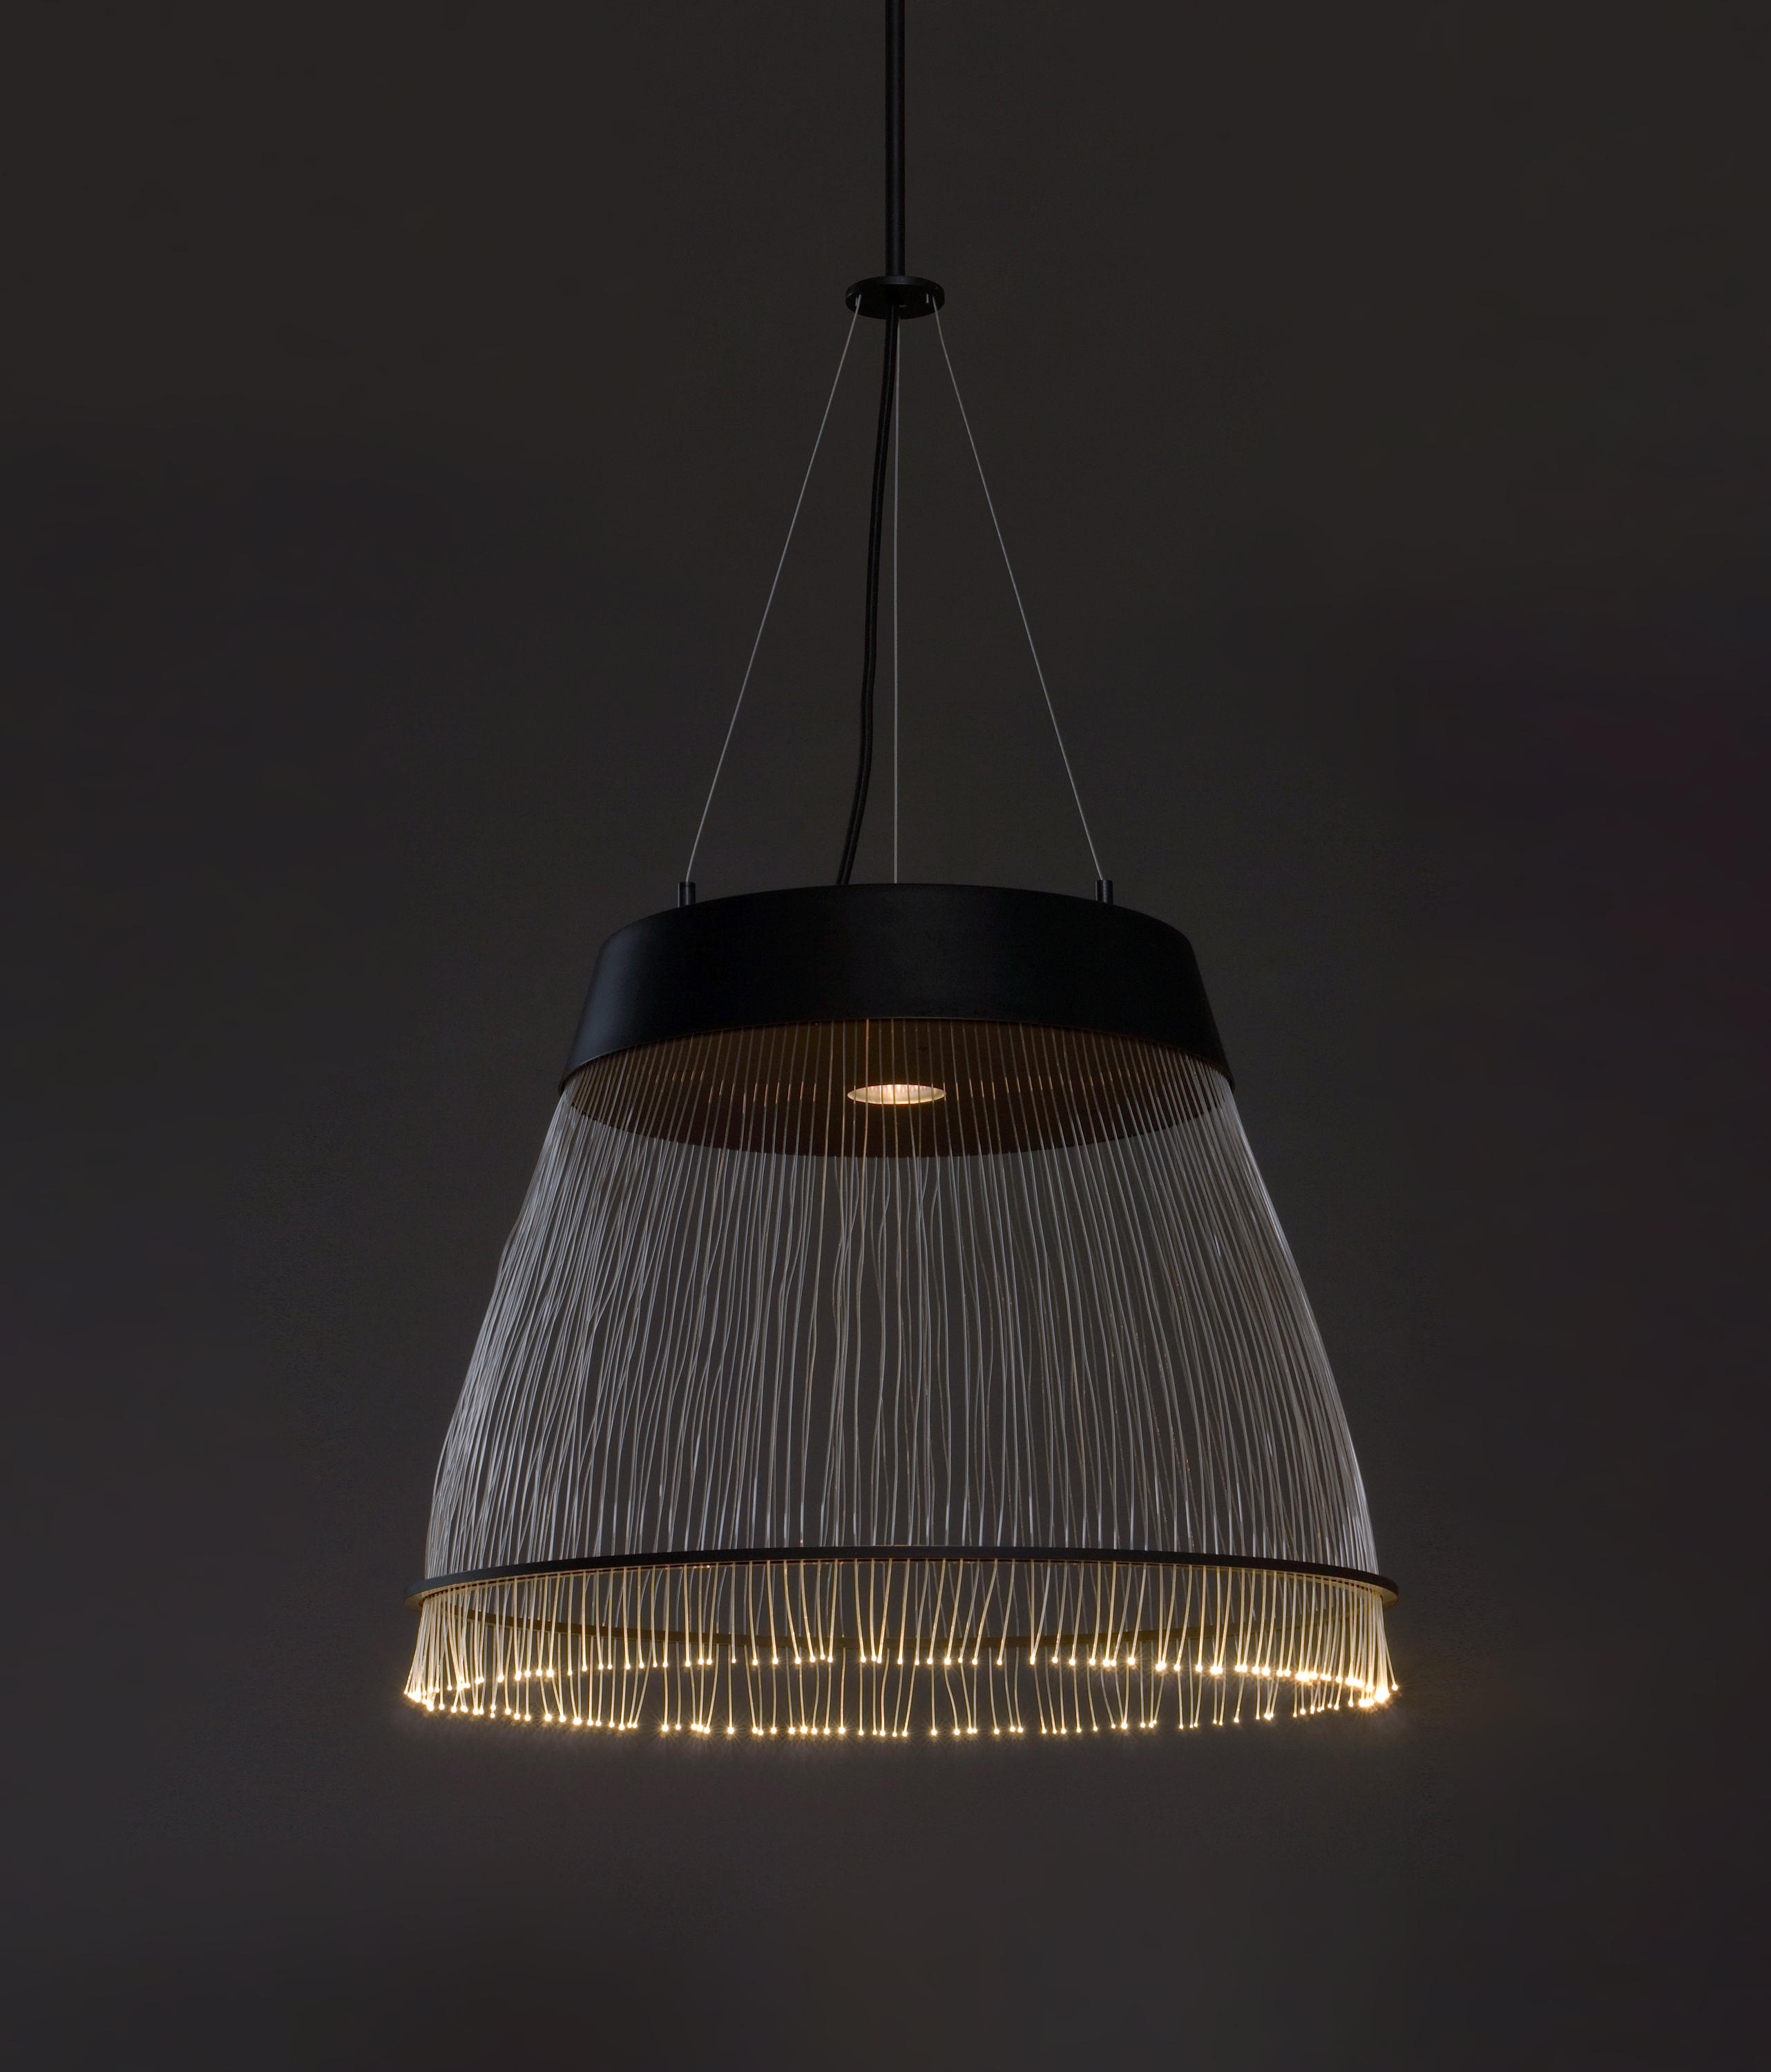 Black fiber pendant general lighting from refer staer architonic black fiber pendant by refer staer general lighting arubaitofo Images